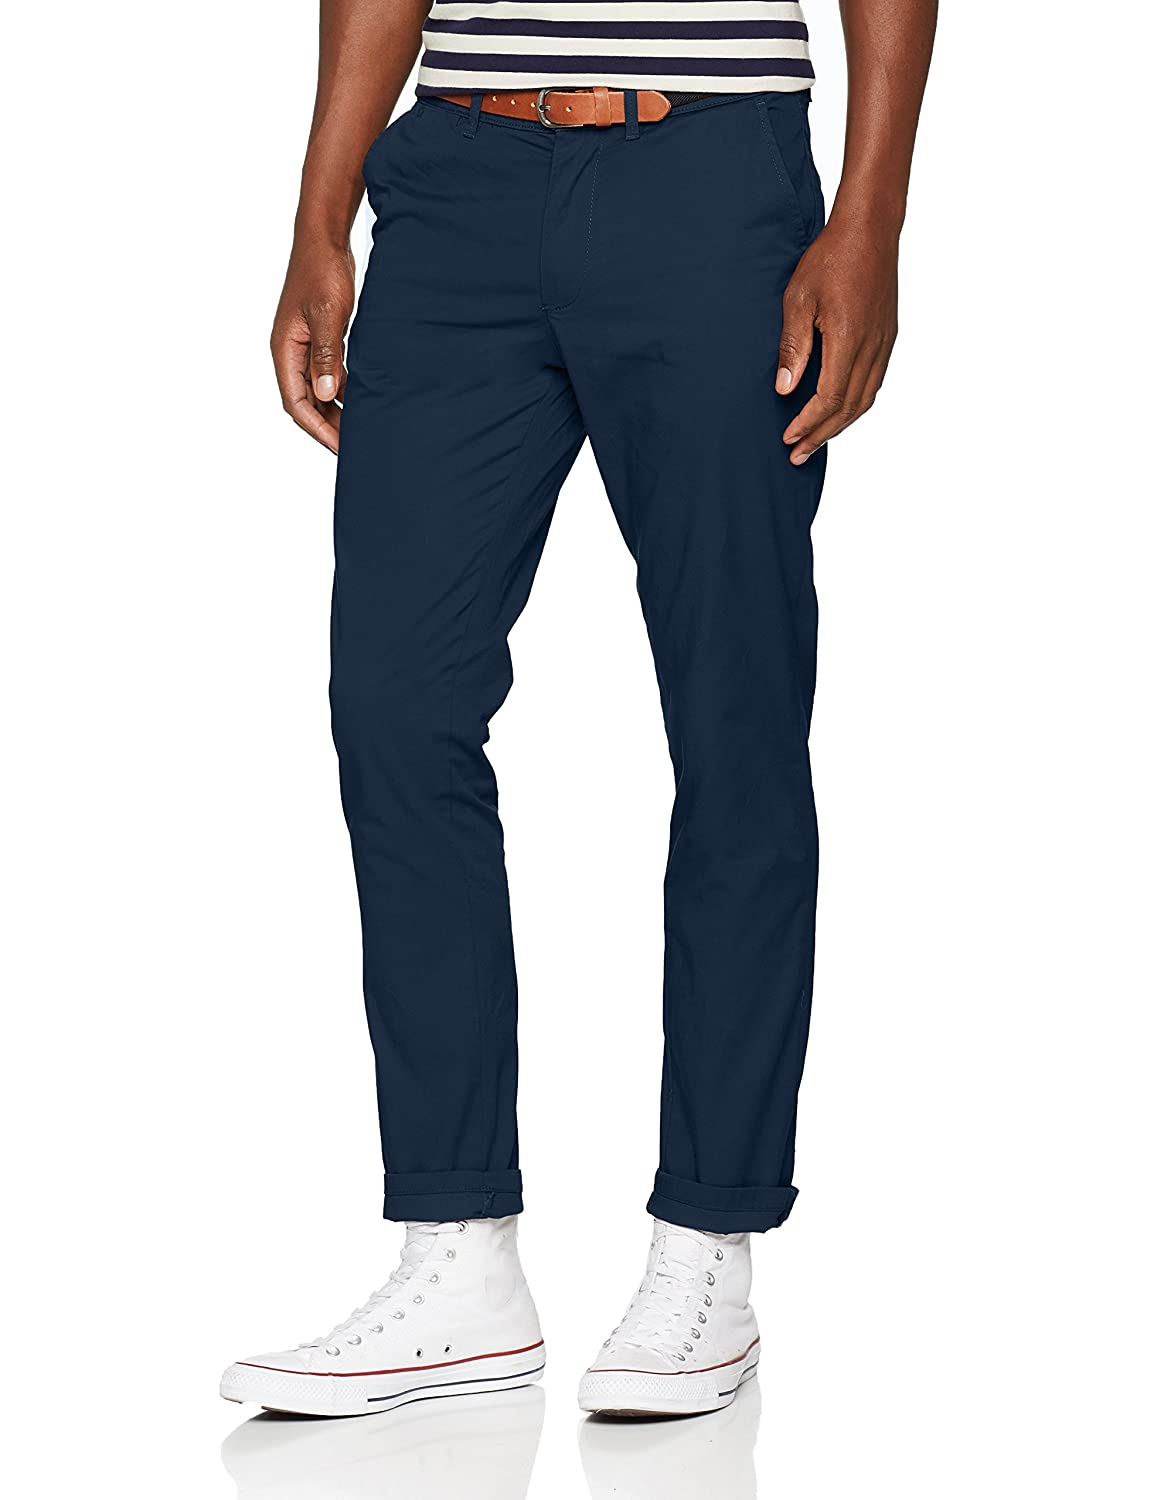 TALLA 29W / 32L. SELECTED HOMME Slhslim-Yard Mn Pants W Noos - Pantalones Hombre